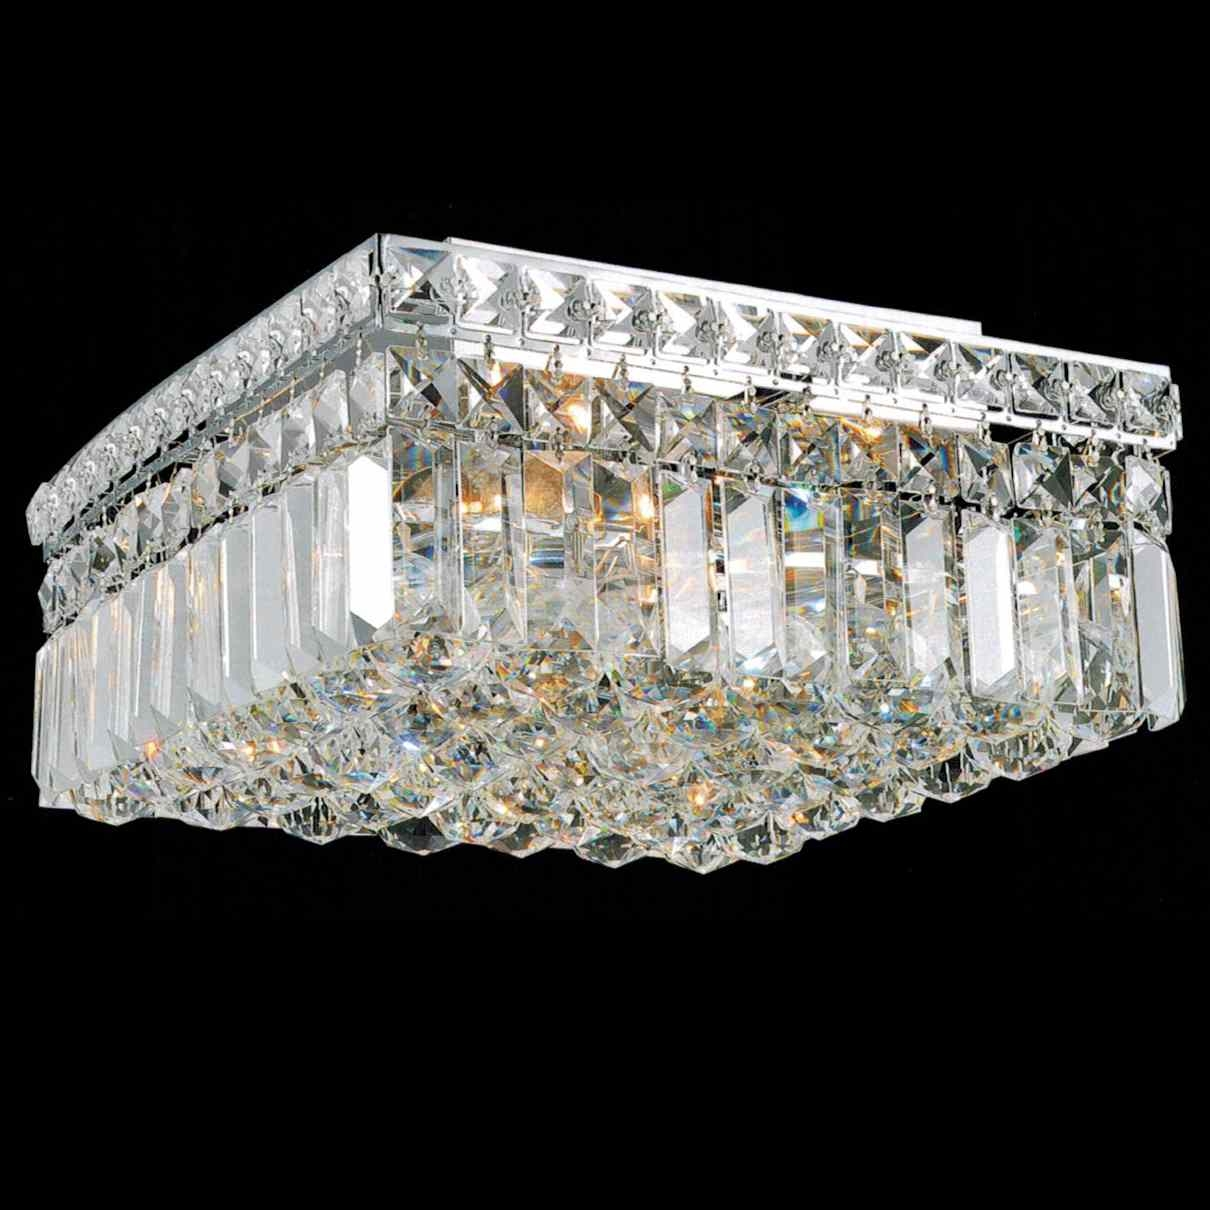 Brizzo Lighting Stores 12 Bossolo Transitional Crystal Square Inside 4 Light Crystal Chandeliers (Image 2 of 25)